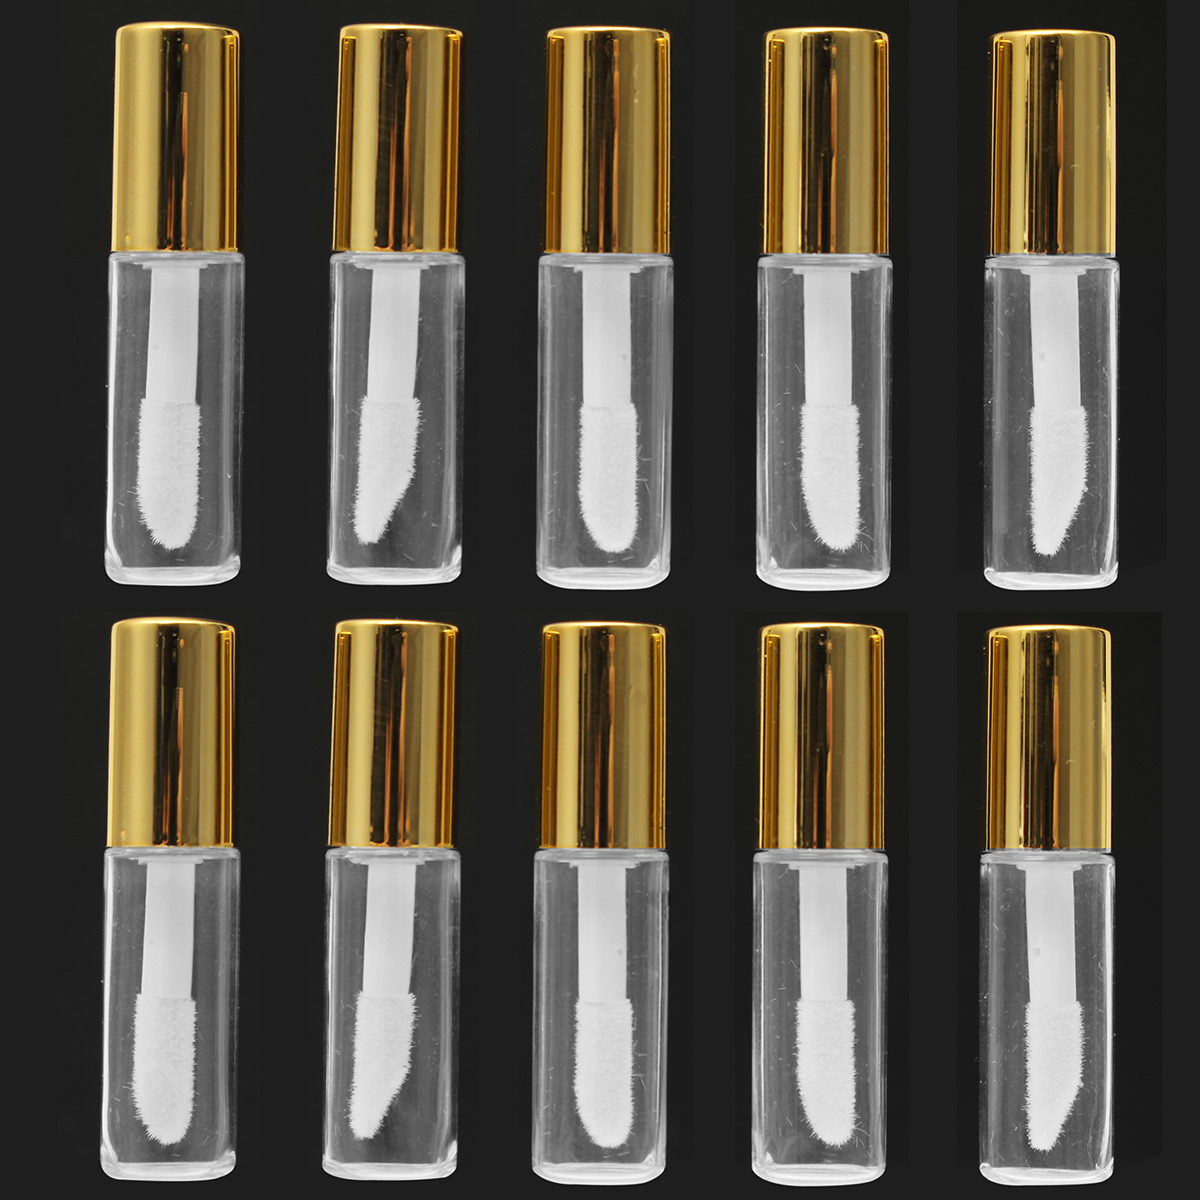 10 Pieces 1.2ML Empty Transparent PE Lip Gloss Tubes Plastic Lip Balm Tube Lipstick Mini Sample Cosmetic Container With Gold Cap